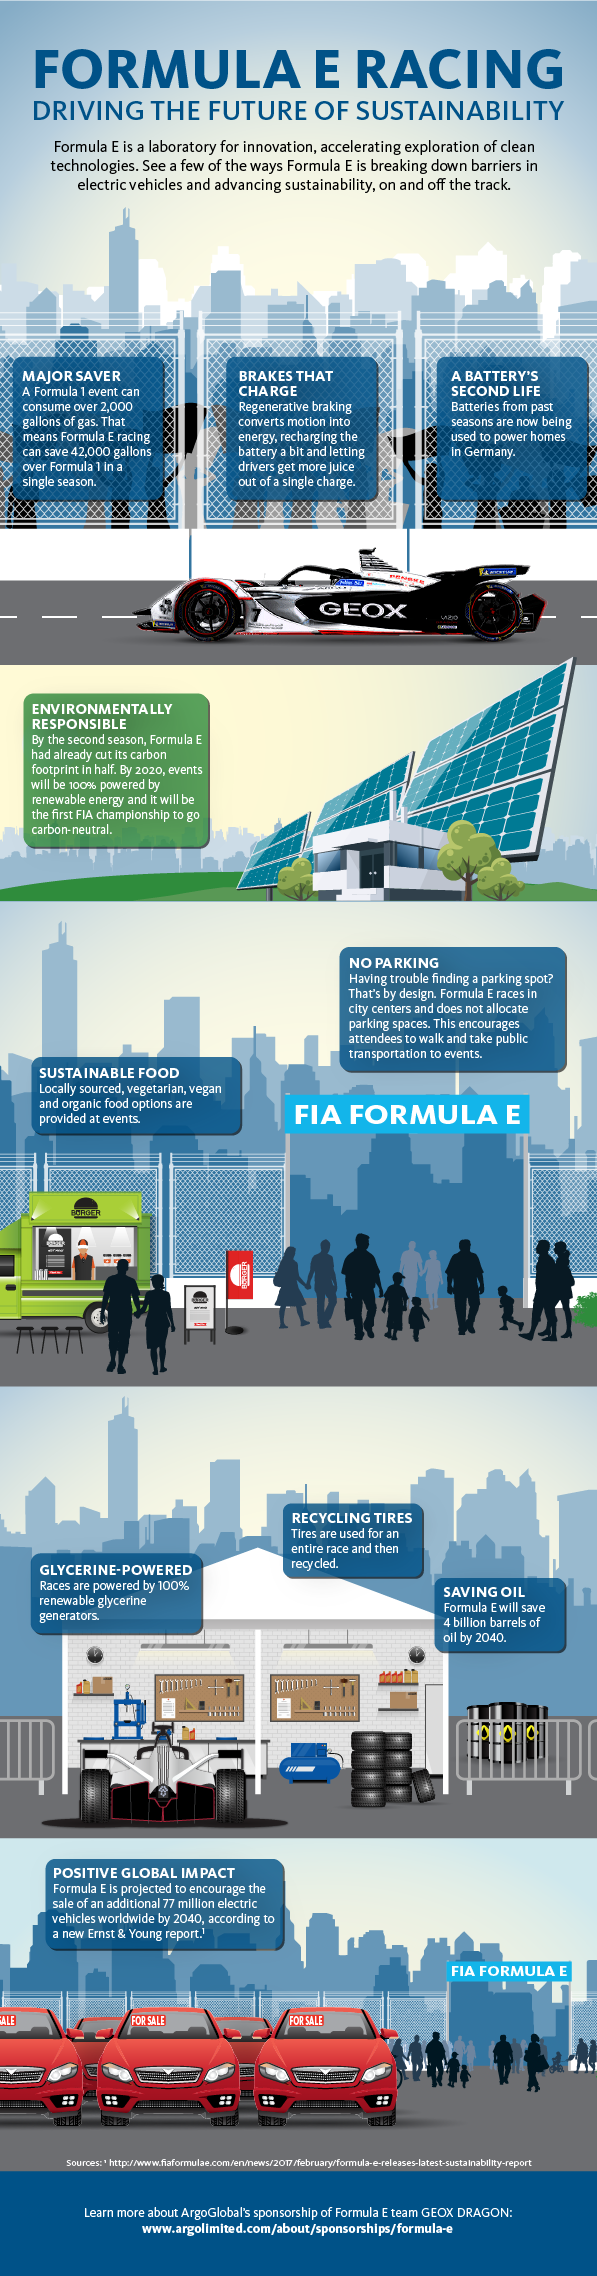 Driving-the-Future-of-Sustainability-Formula-E-Infographic